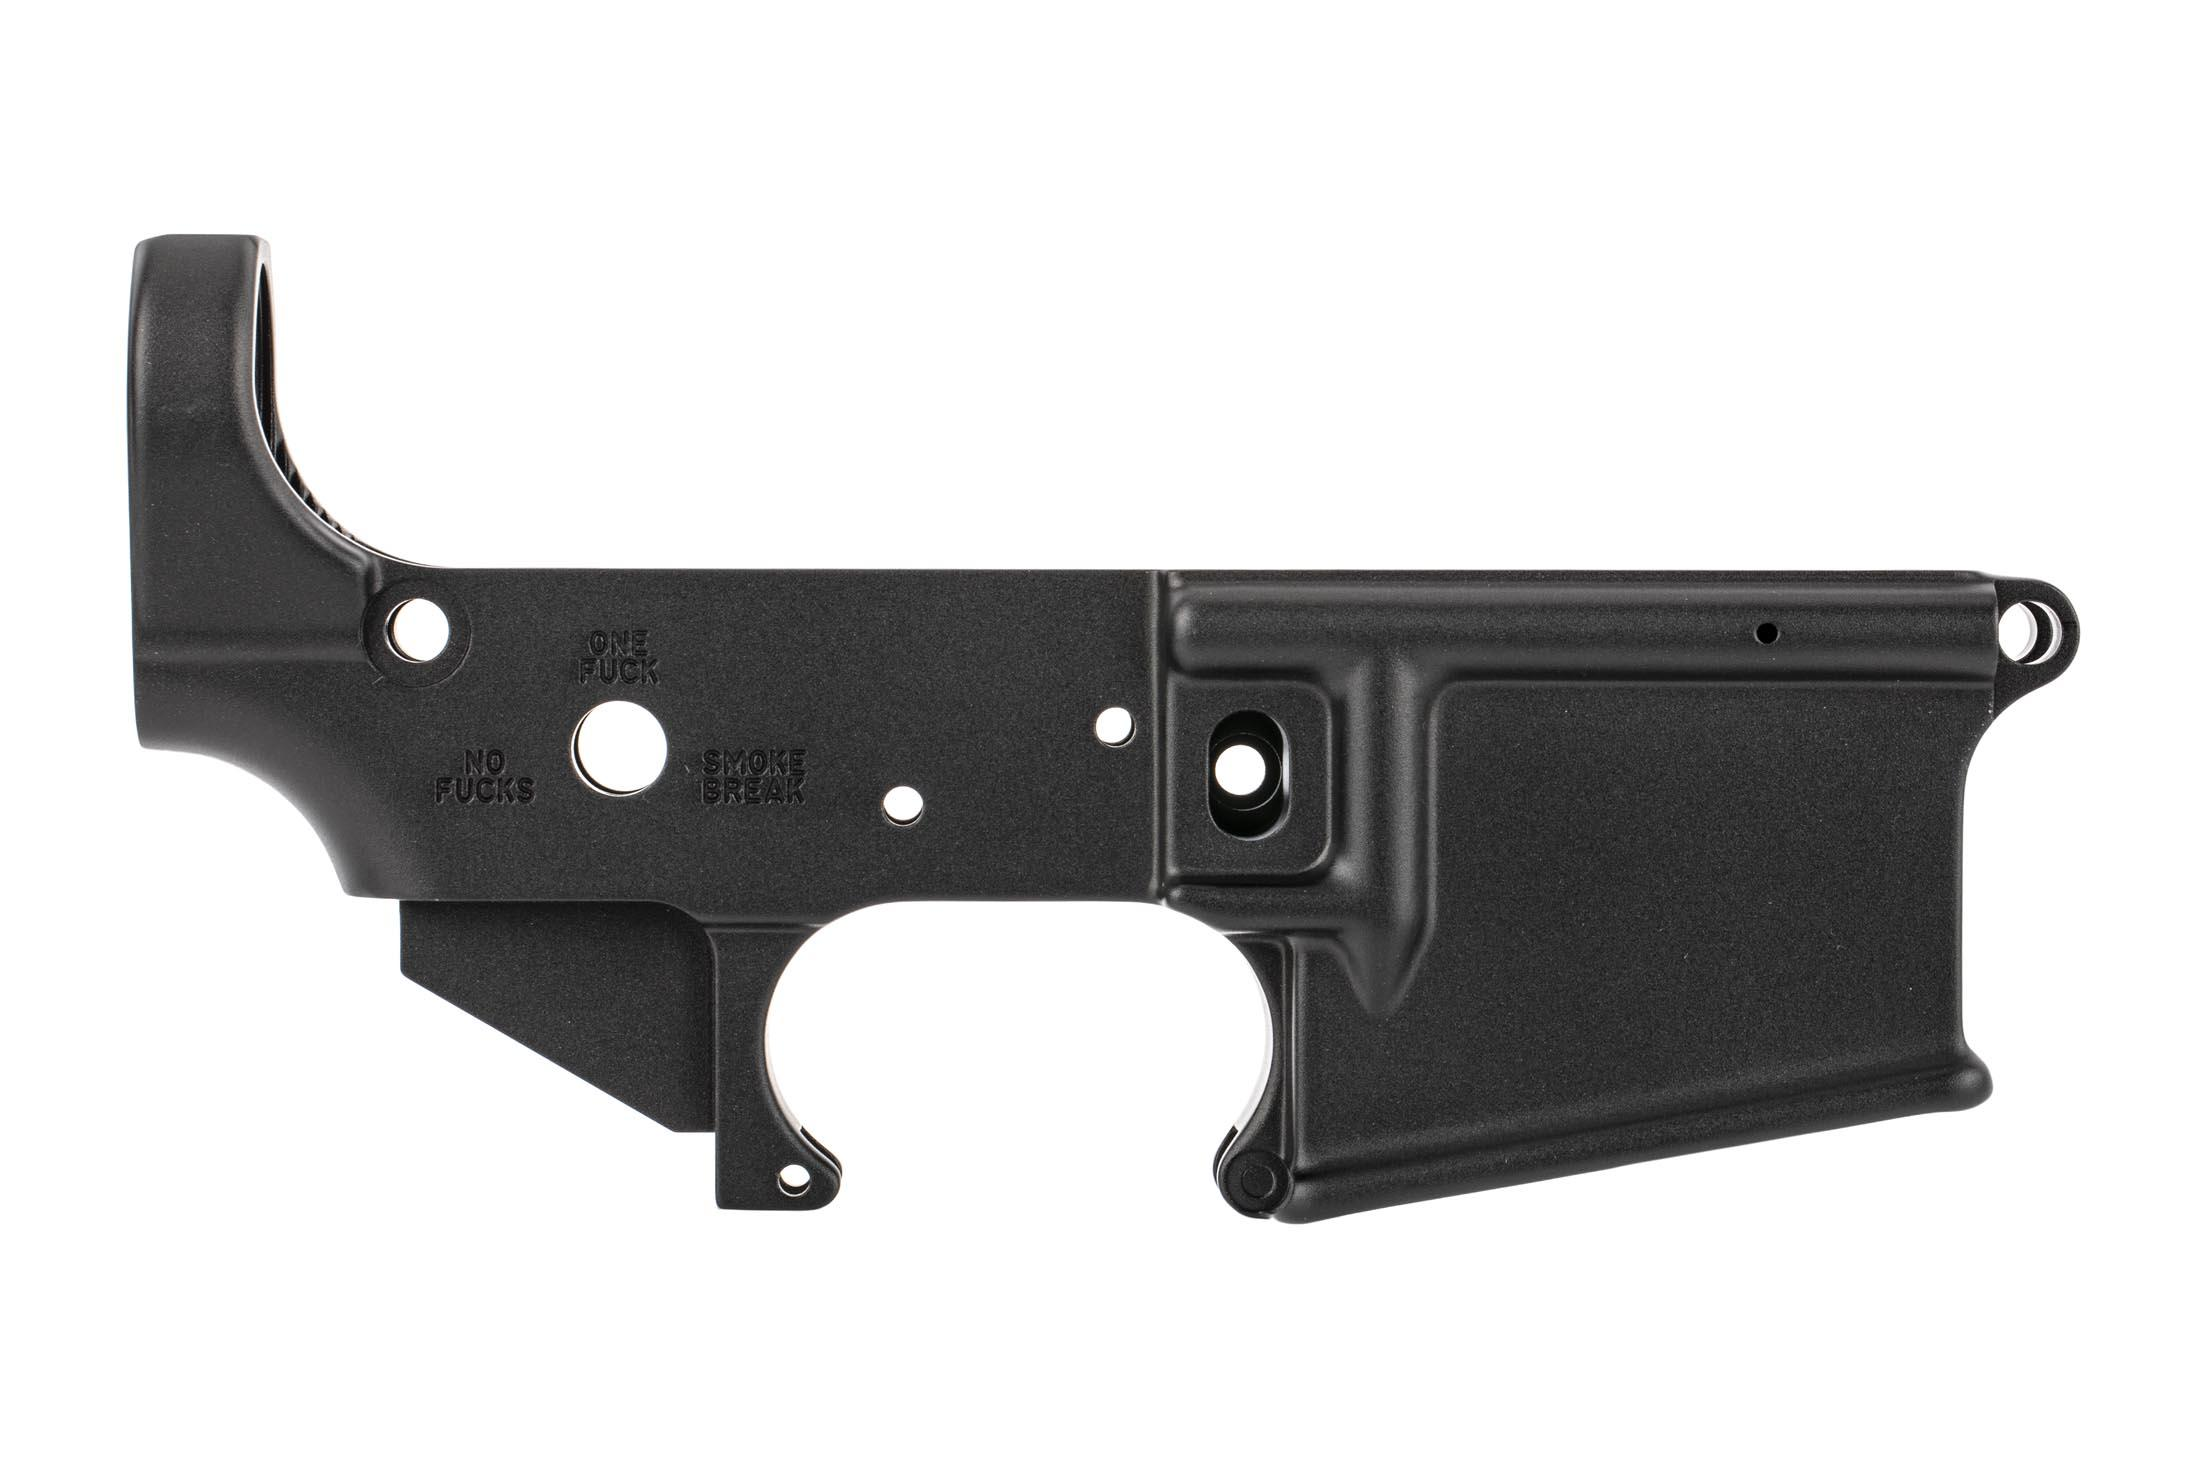 The SOLGW stripped AR15 lower receiver Soul Snatcher Edition features three selector markings